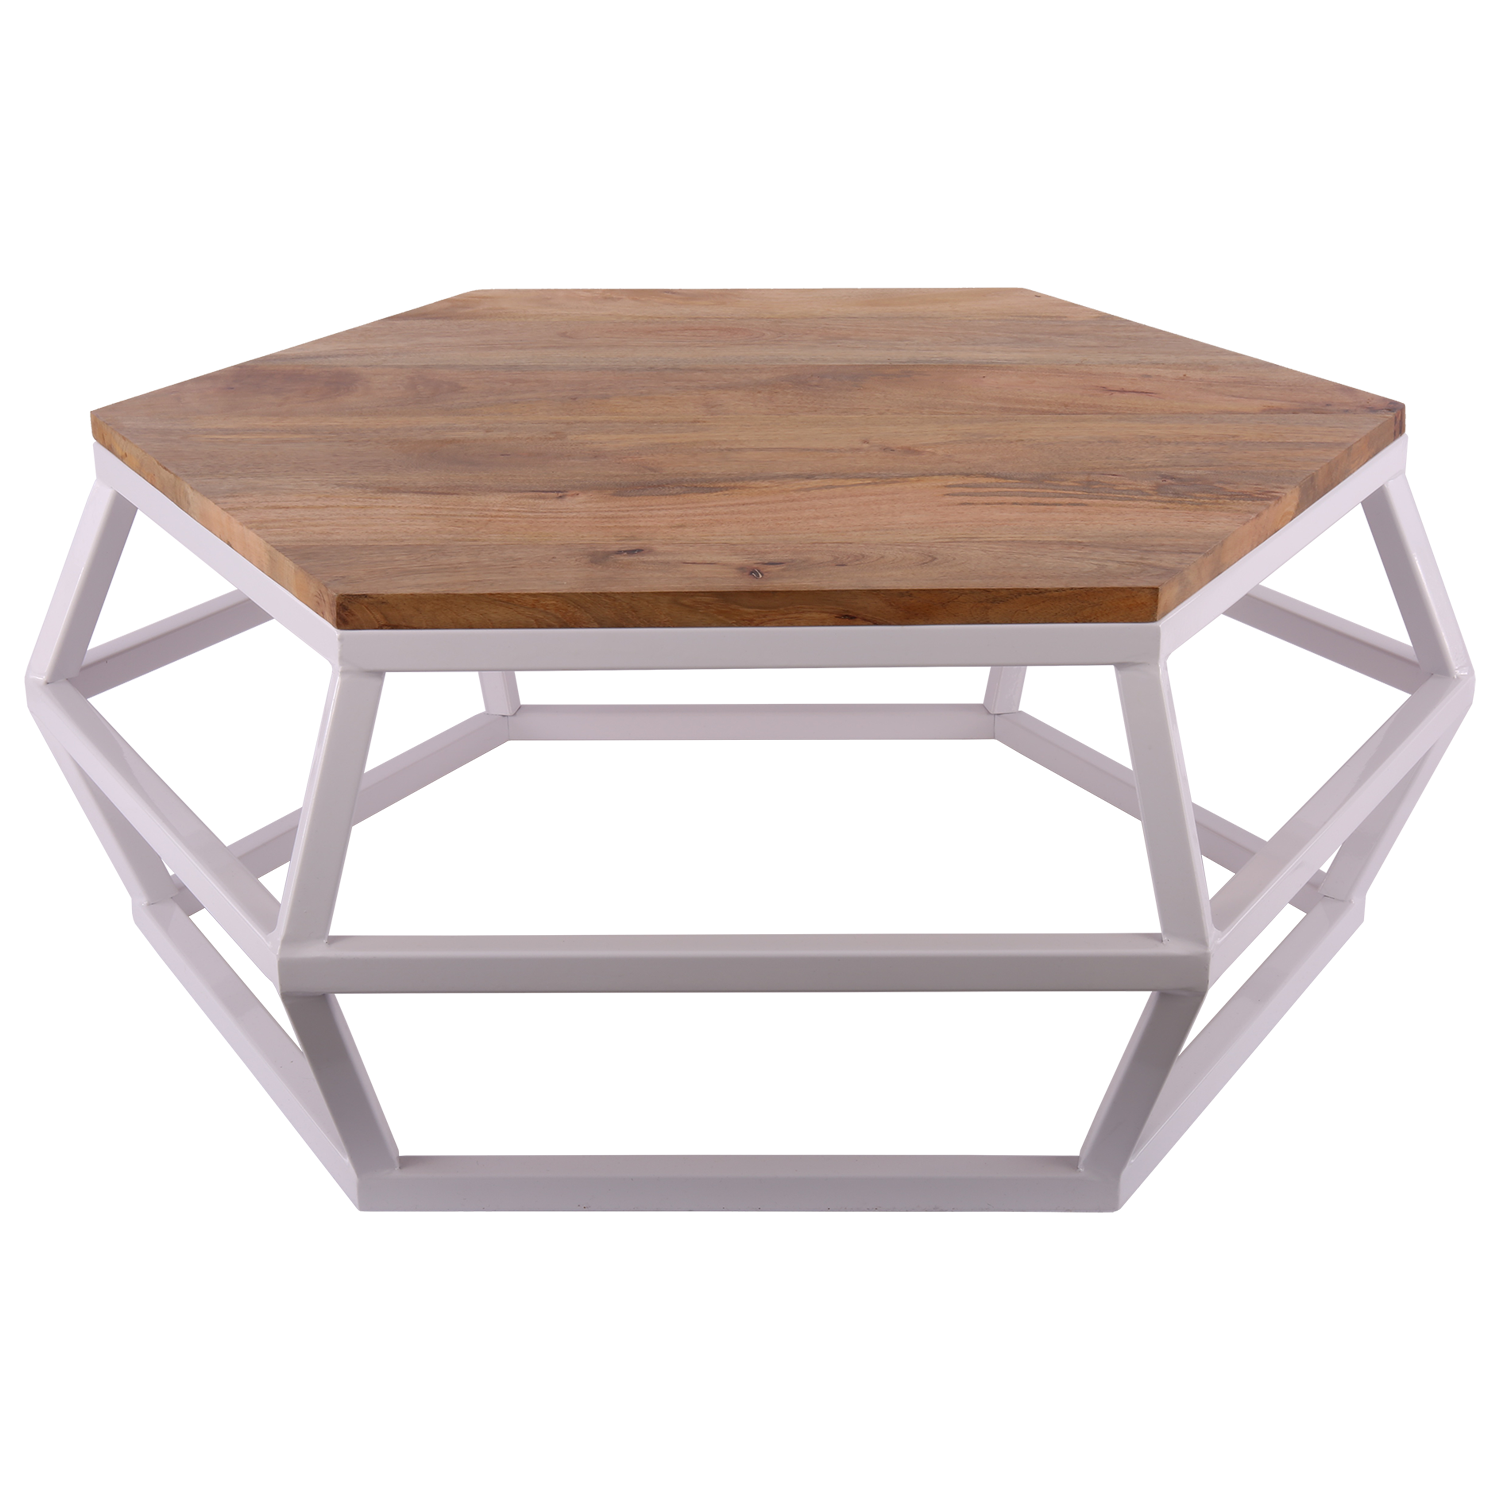 Table Banc Bois Interieur table basse hexagonale metal blanc et bois